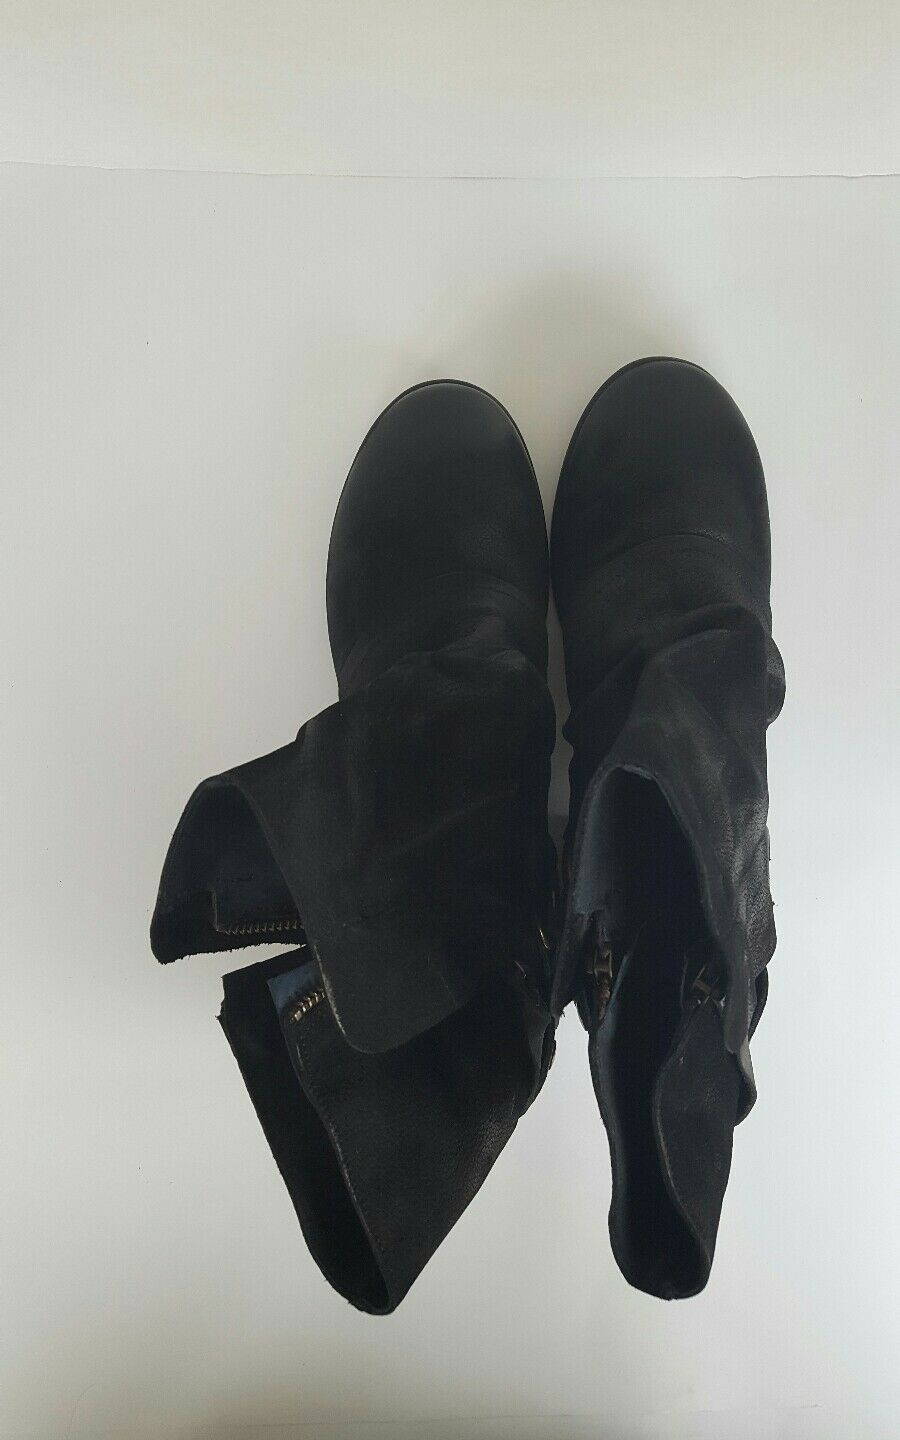 New Women's Lavoraxione Artigianale Fred Segal Leather Suede Black Black Black Boots Sz 9M b7ea66